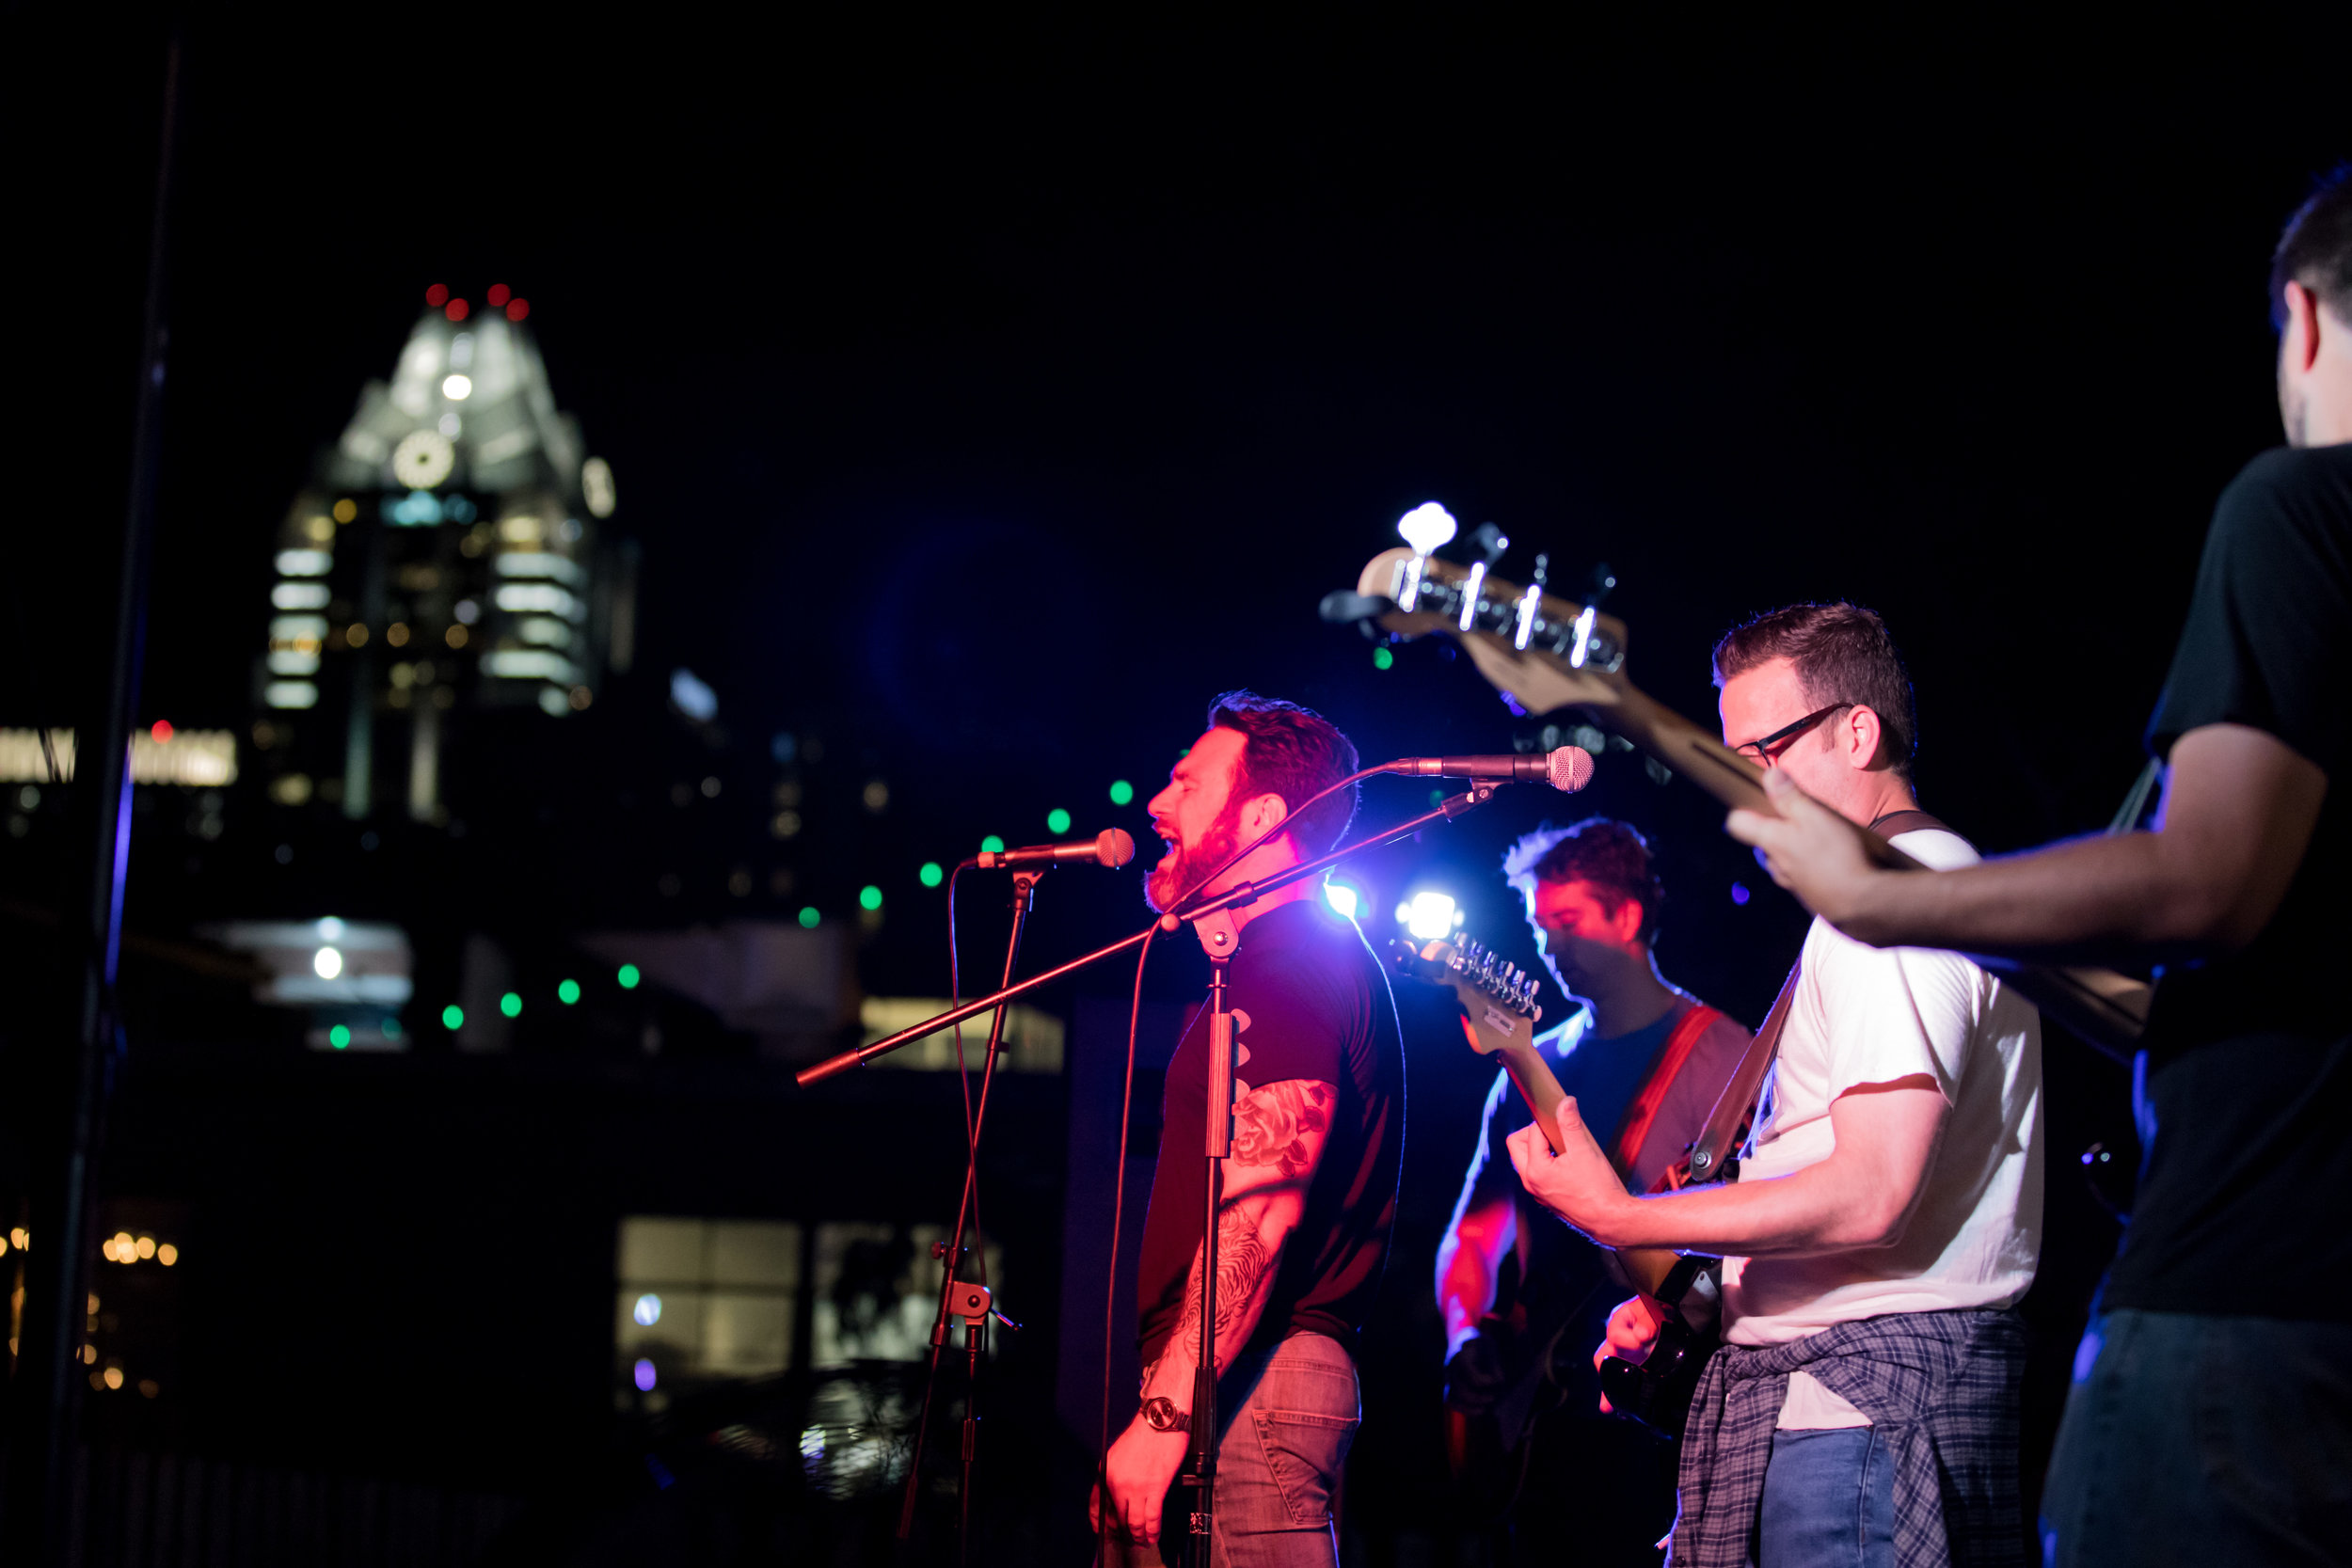 Thursday 18 May 2017, the Second Annual Law Rocks Austin at The Gatsby